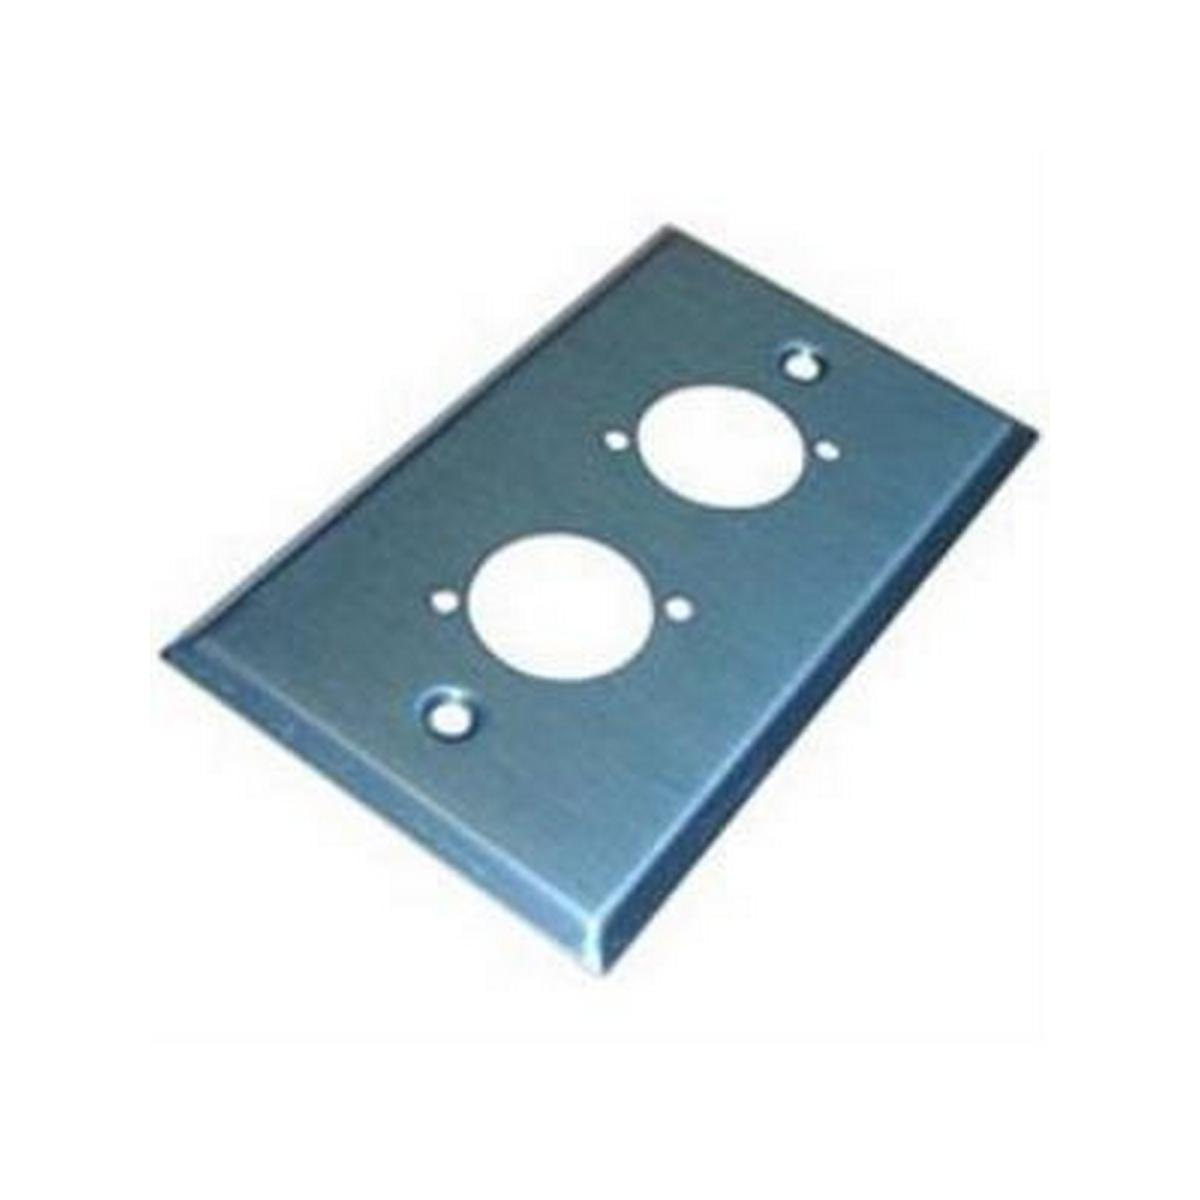 BTX-PL-203STF 1 Gang Plate w.2 BTX/Neutrik Screw Term